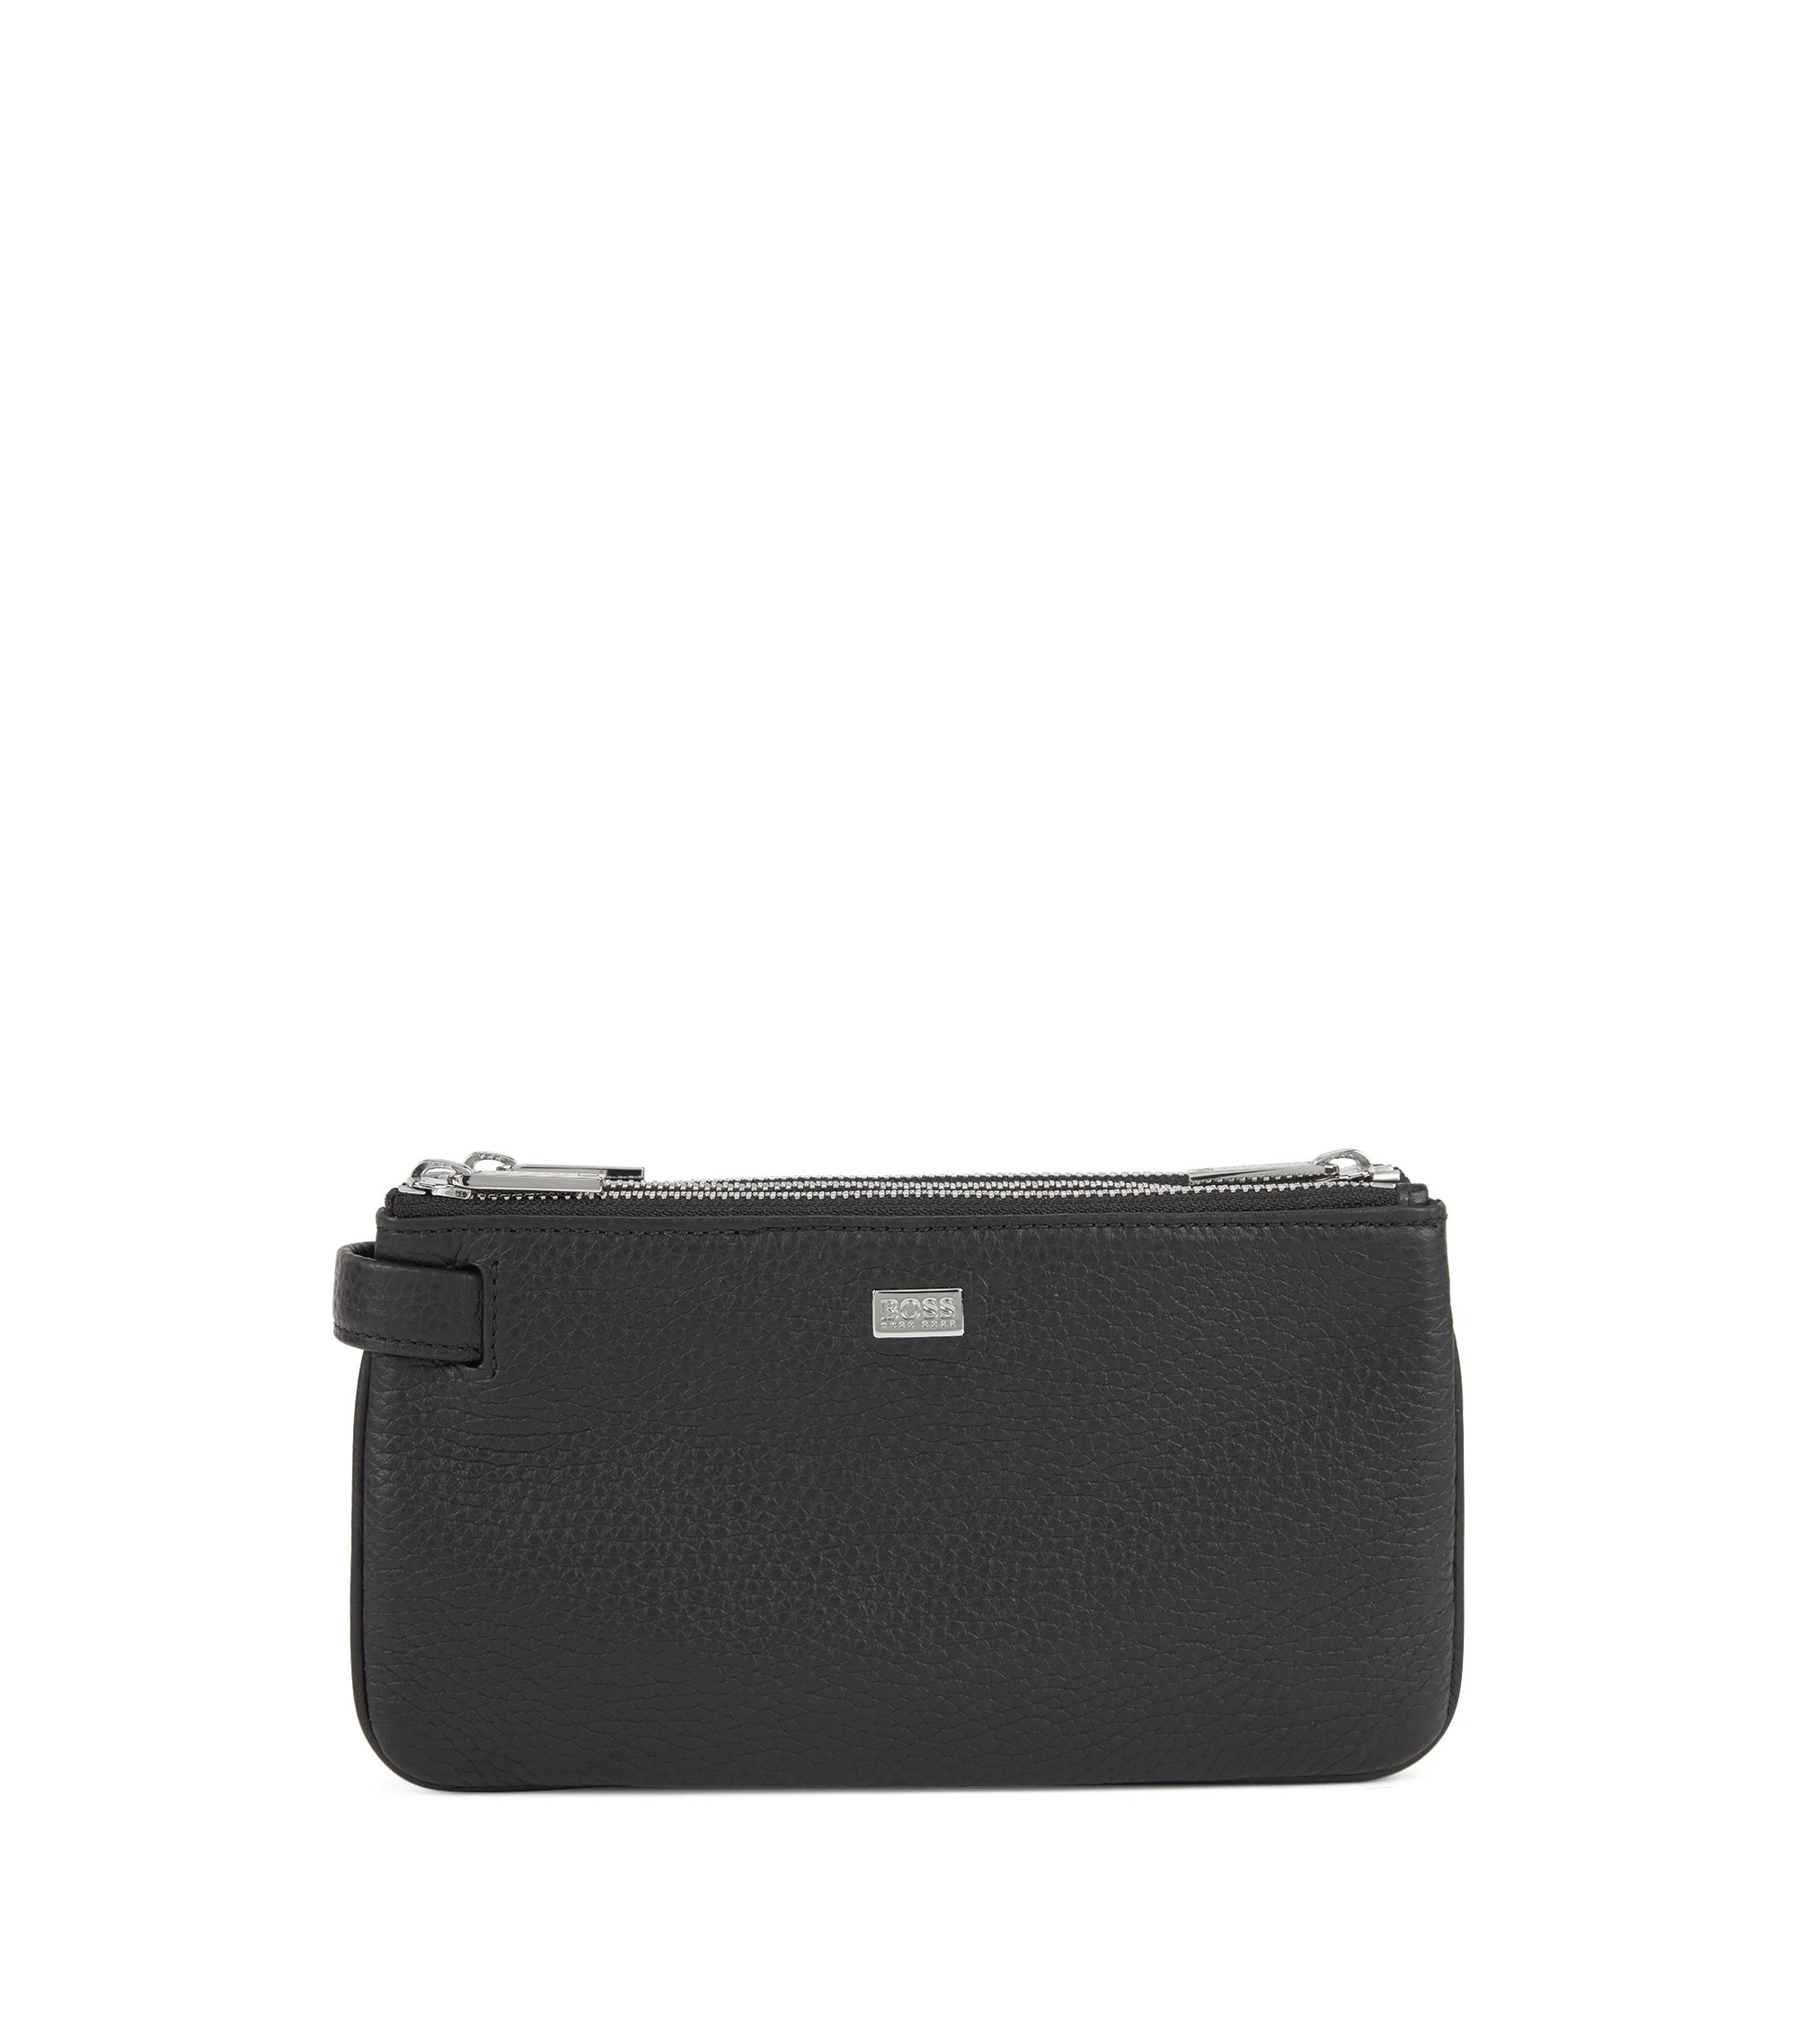 Zipped pochette in grainy leather with retractable handle, Black